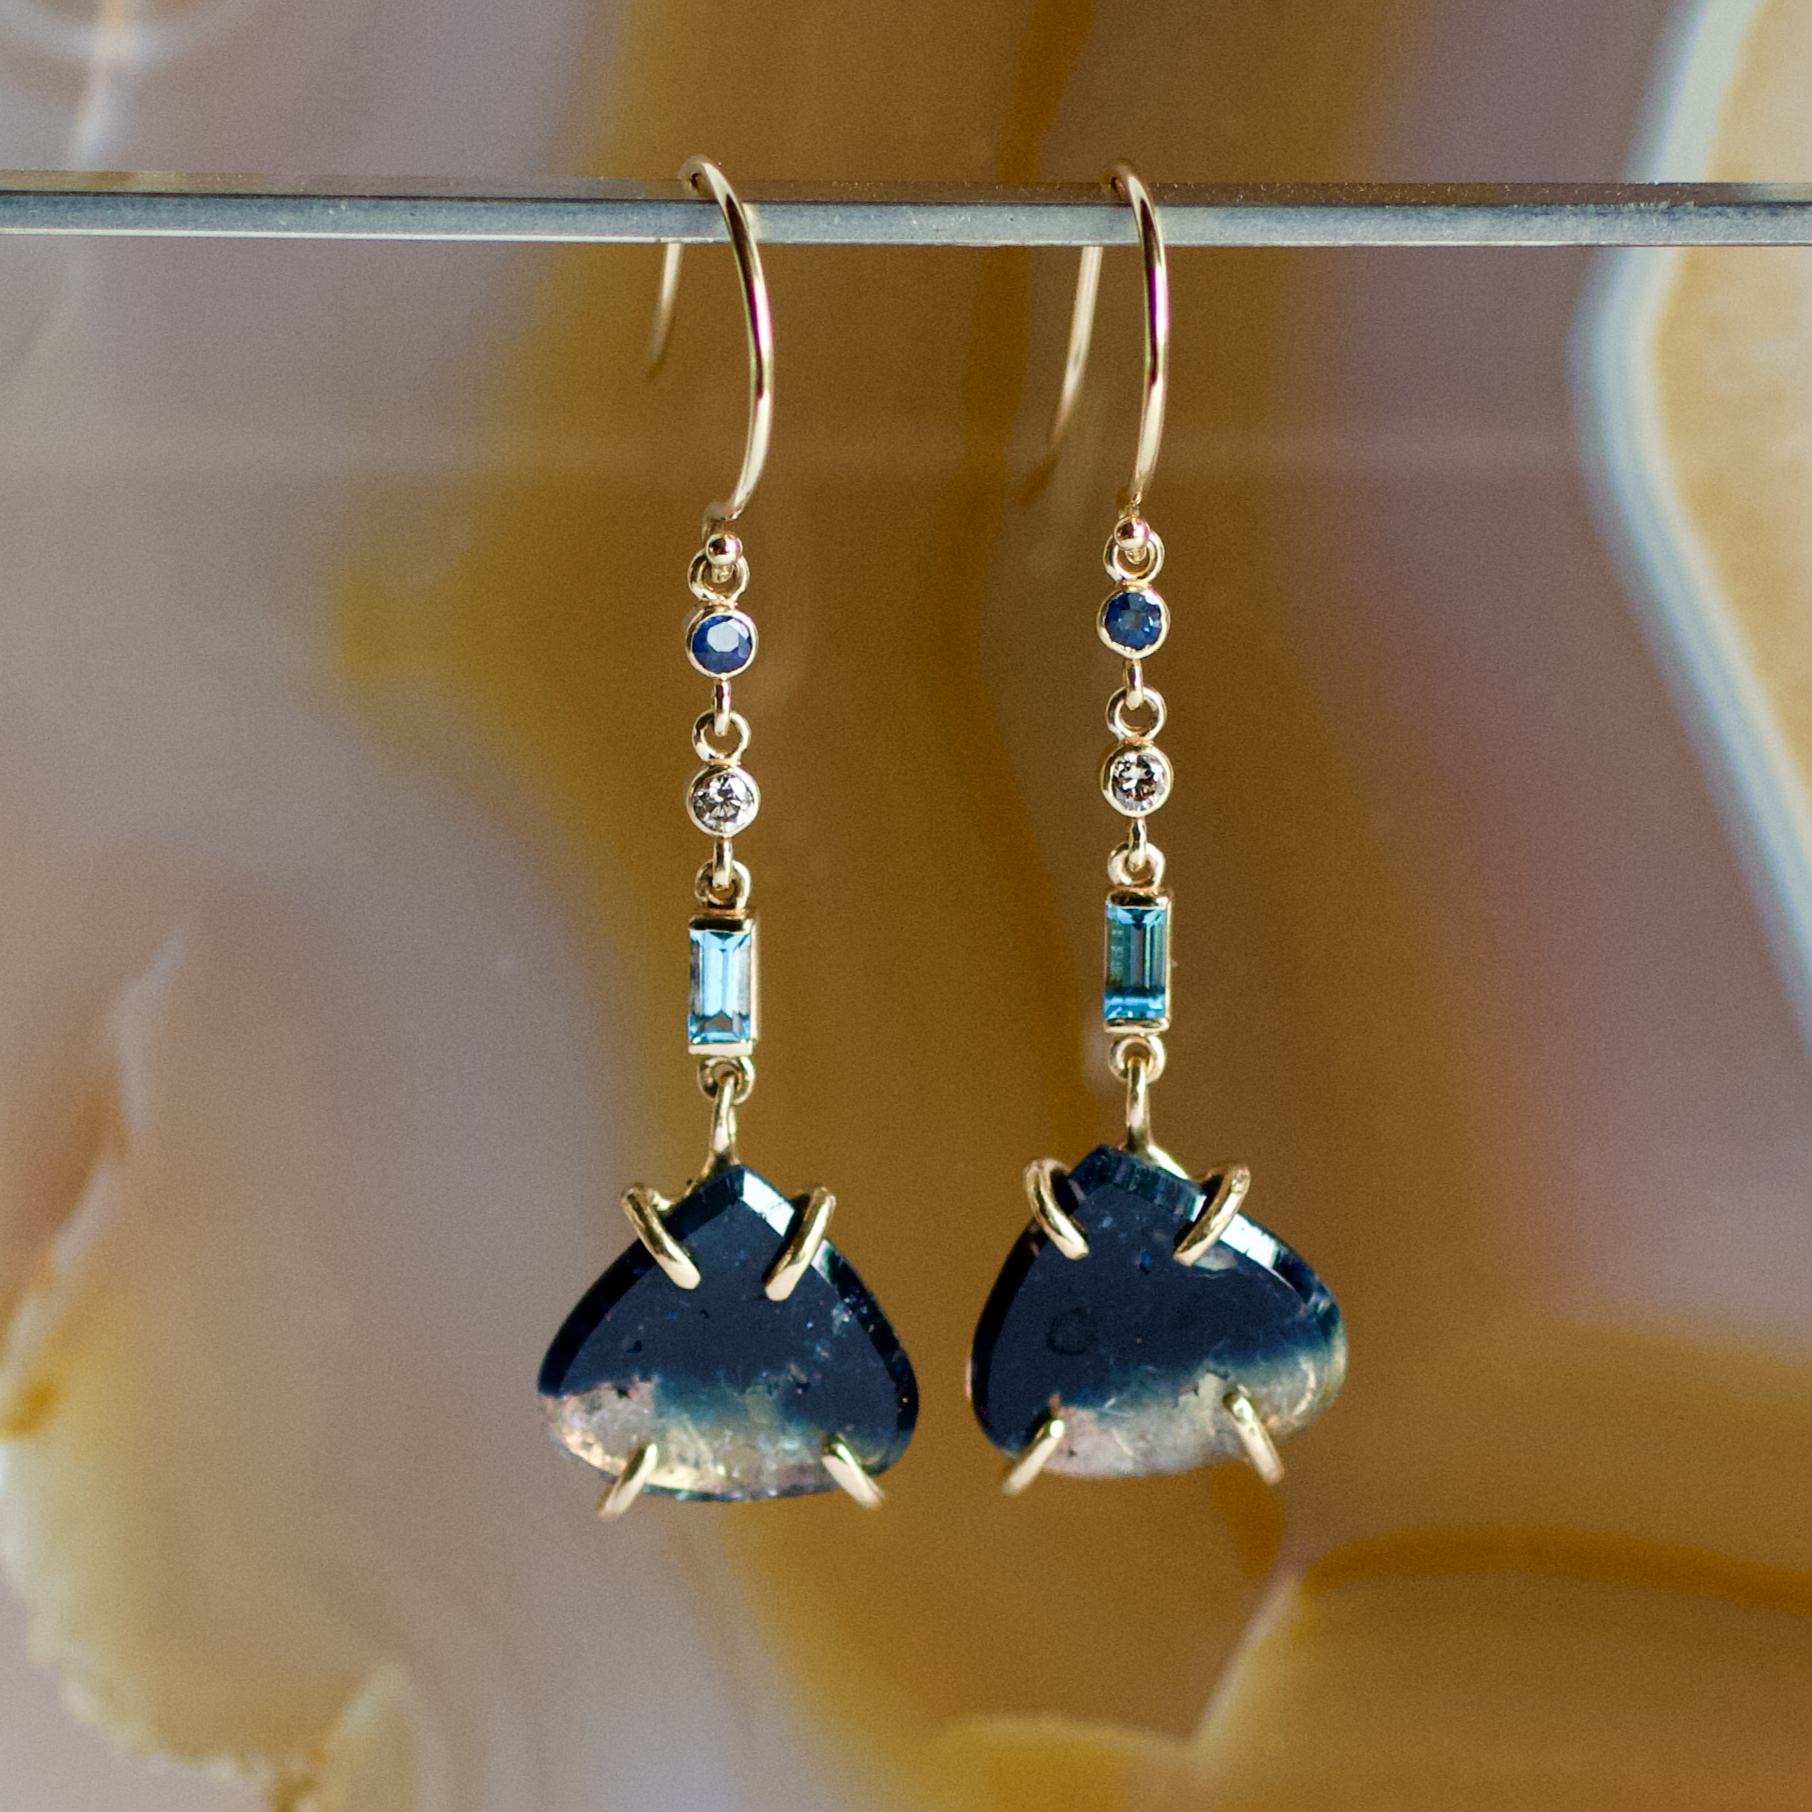 Tourmaline, Sapphire, Diamond, and Topaz Earrings, Handmade in 14k Gold (One-of-a-Kind)